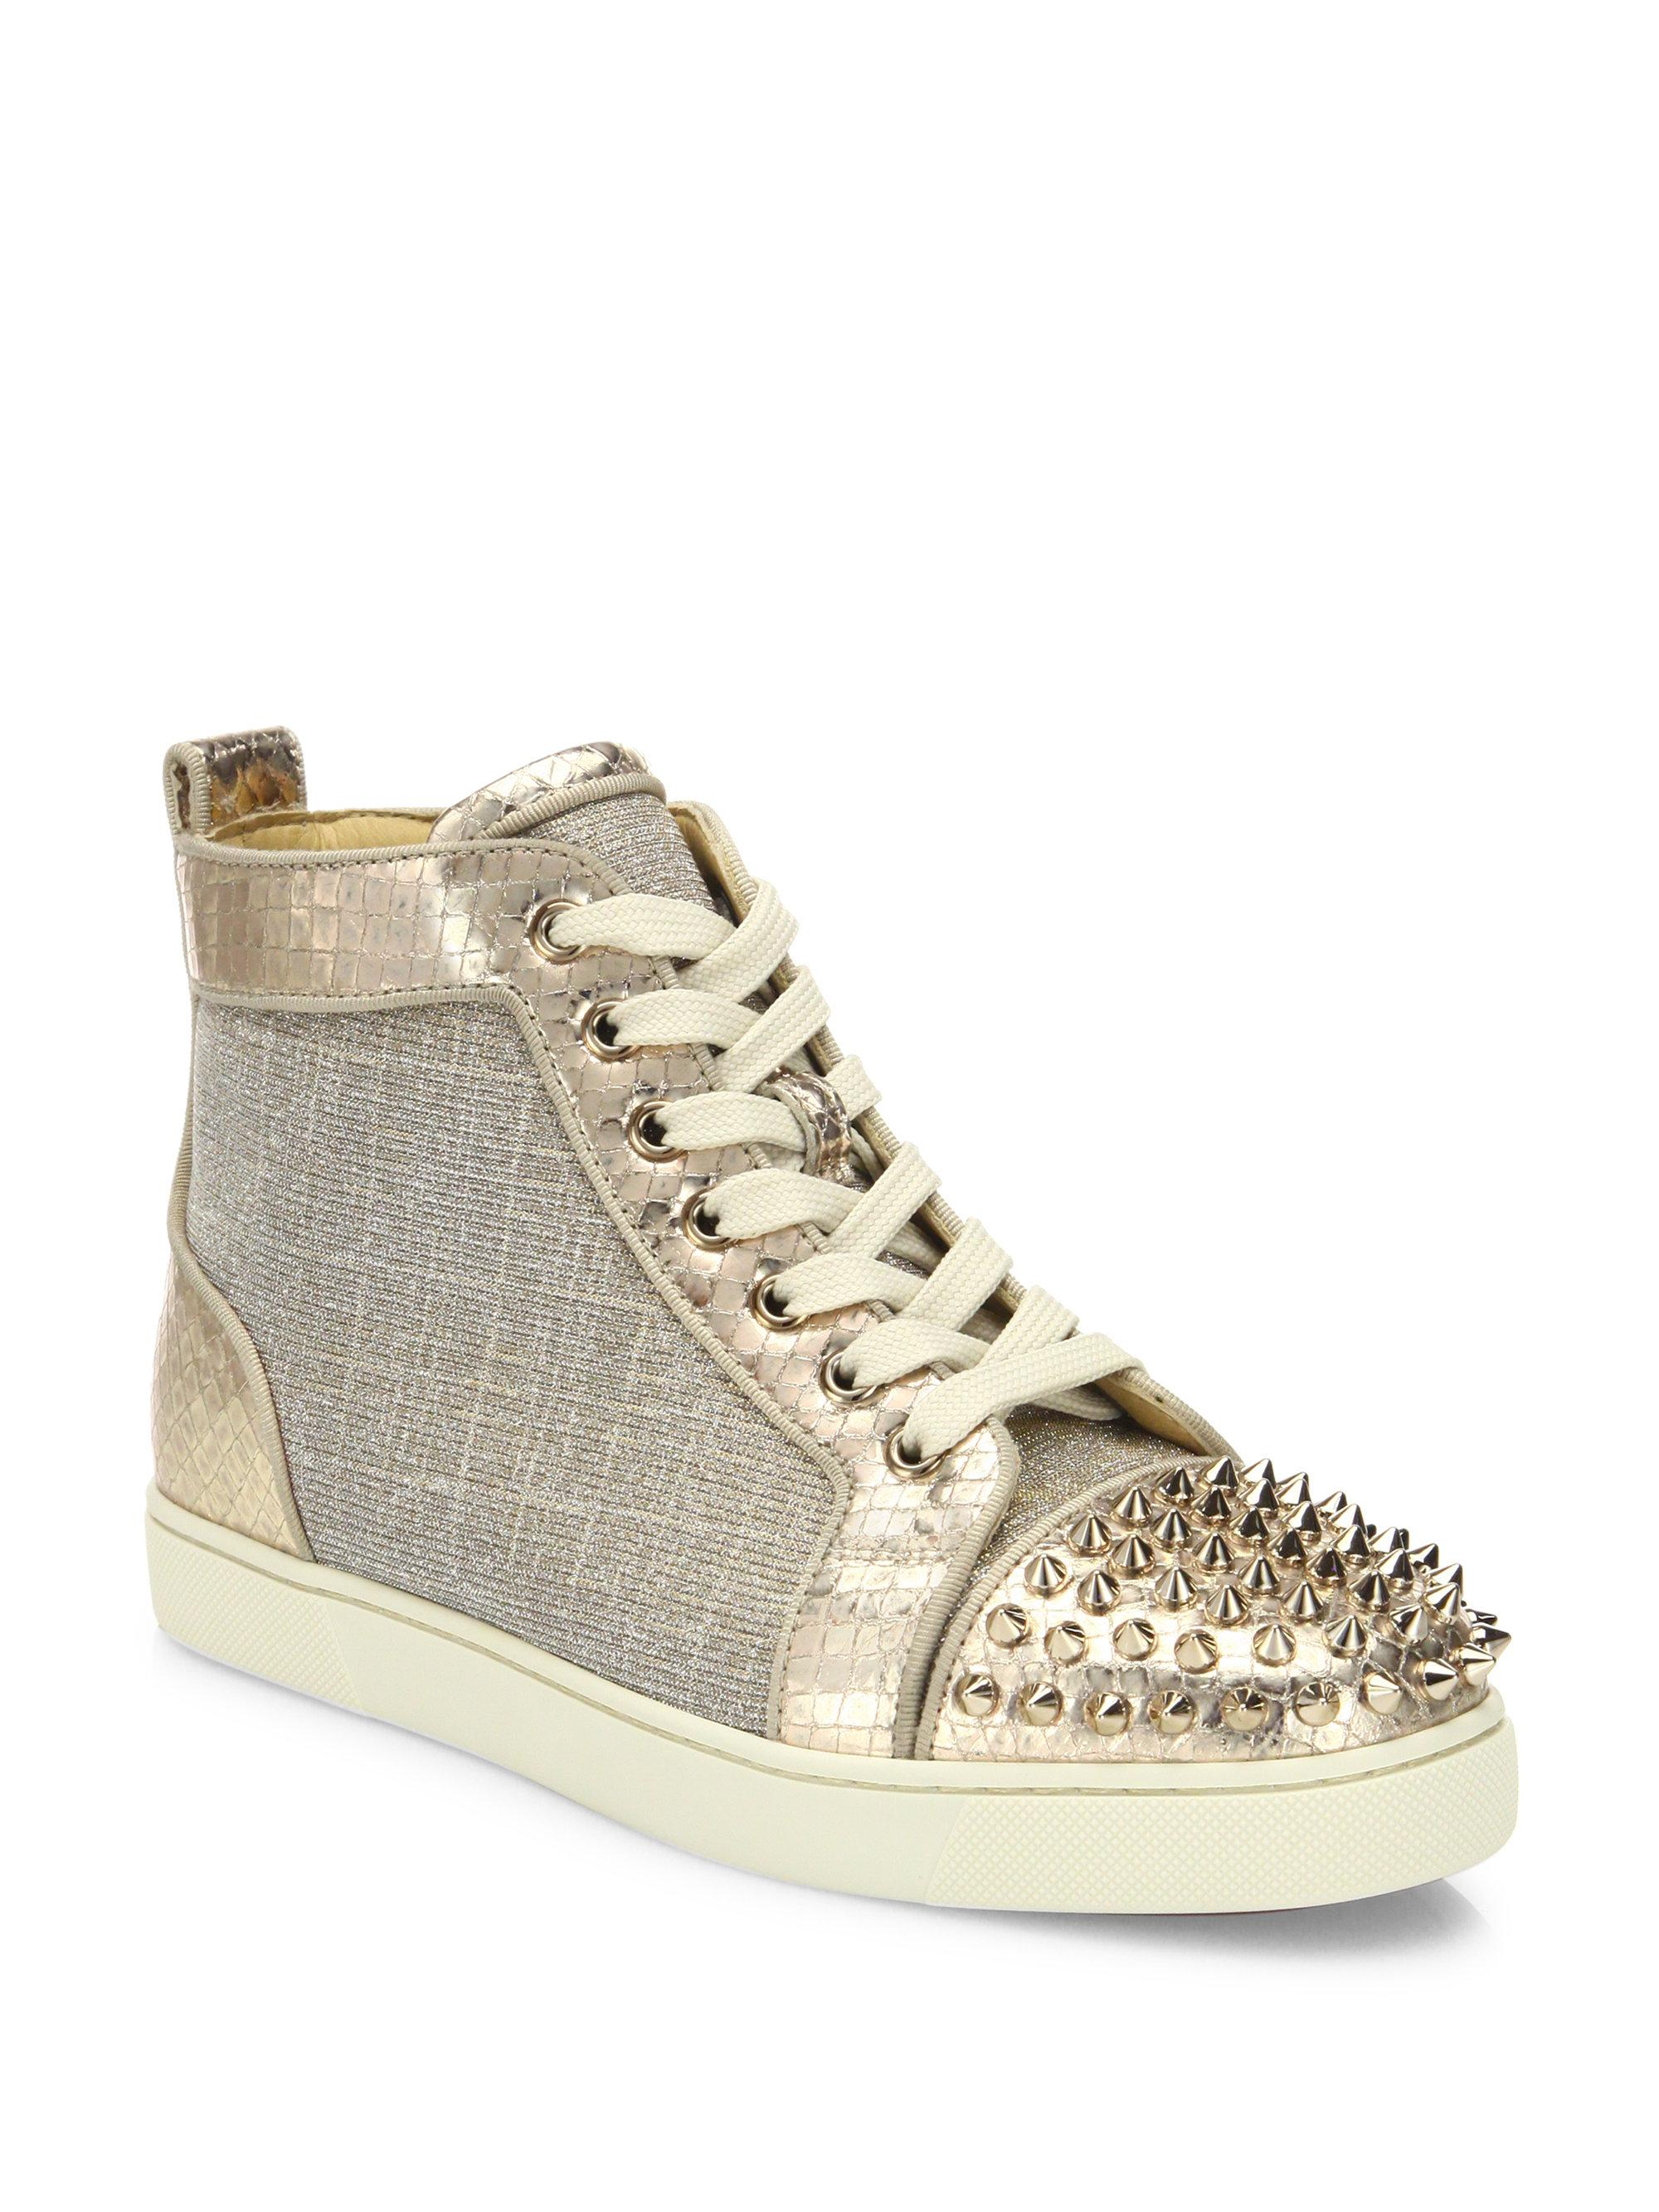 05402d4bbecc Gallery. Previously sold at  Saks Fifth Avenue · Women s Christian  Louboutin Spike